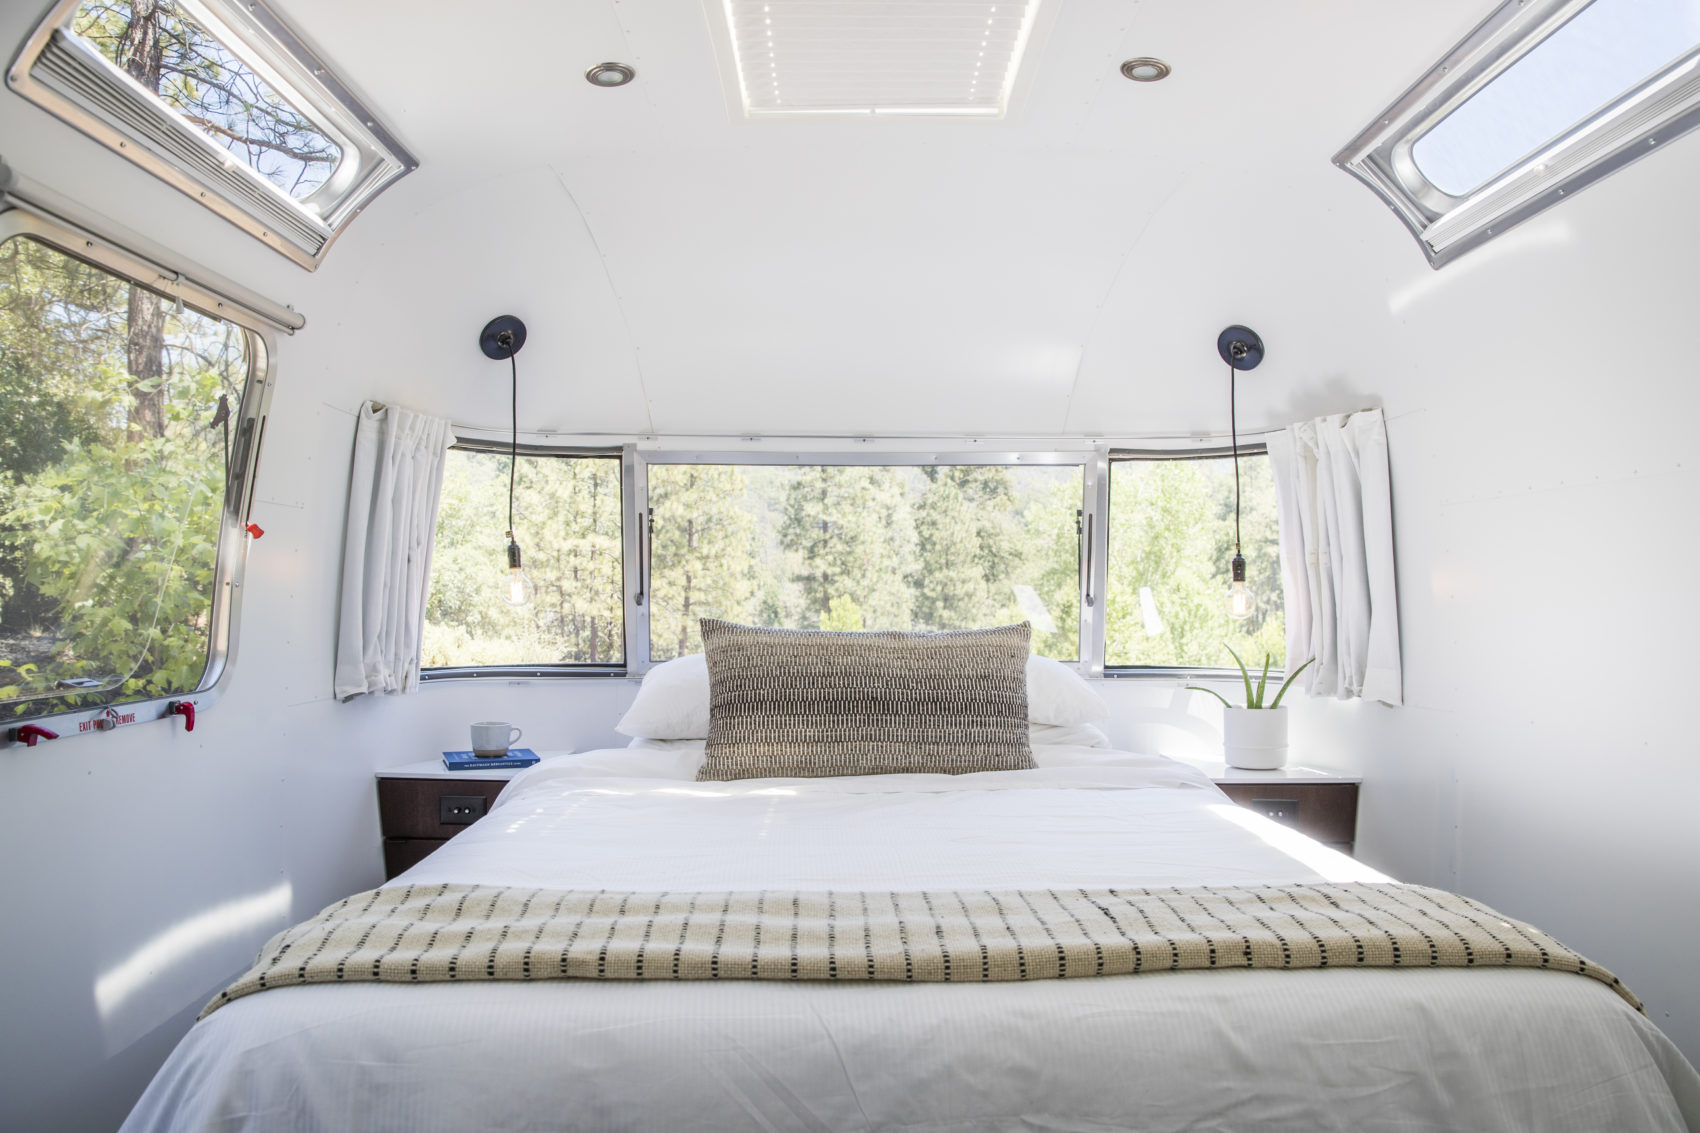 Autopark Airstream trailer bedroom